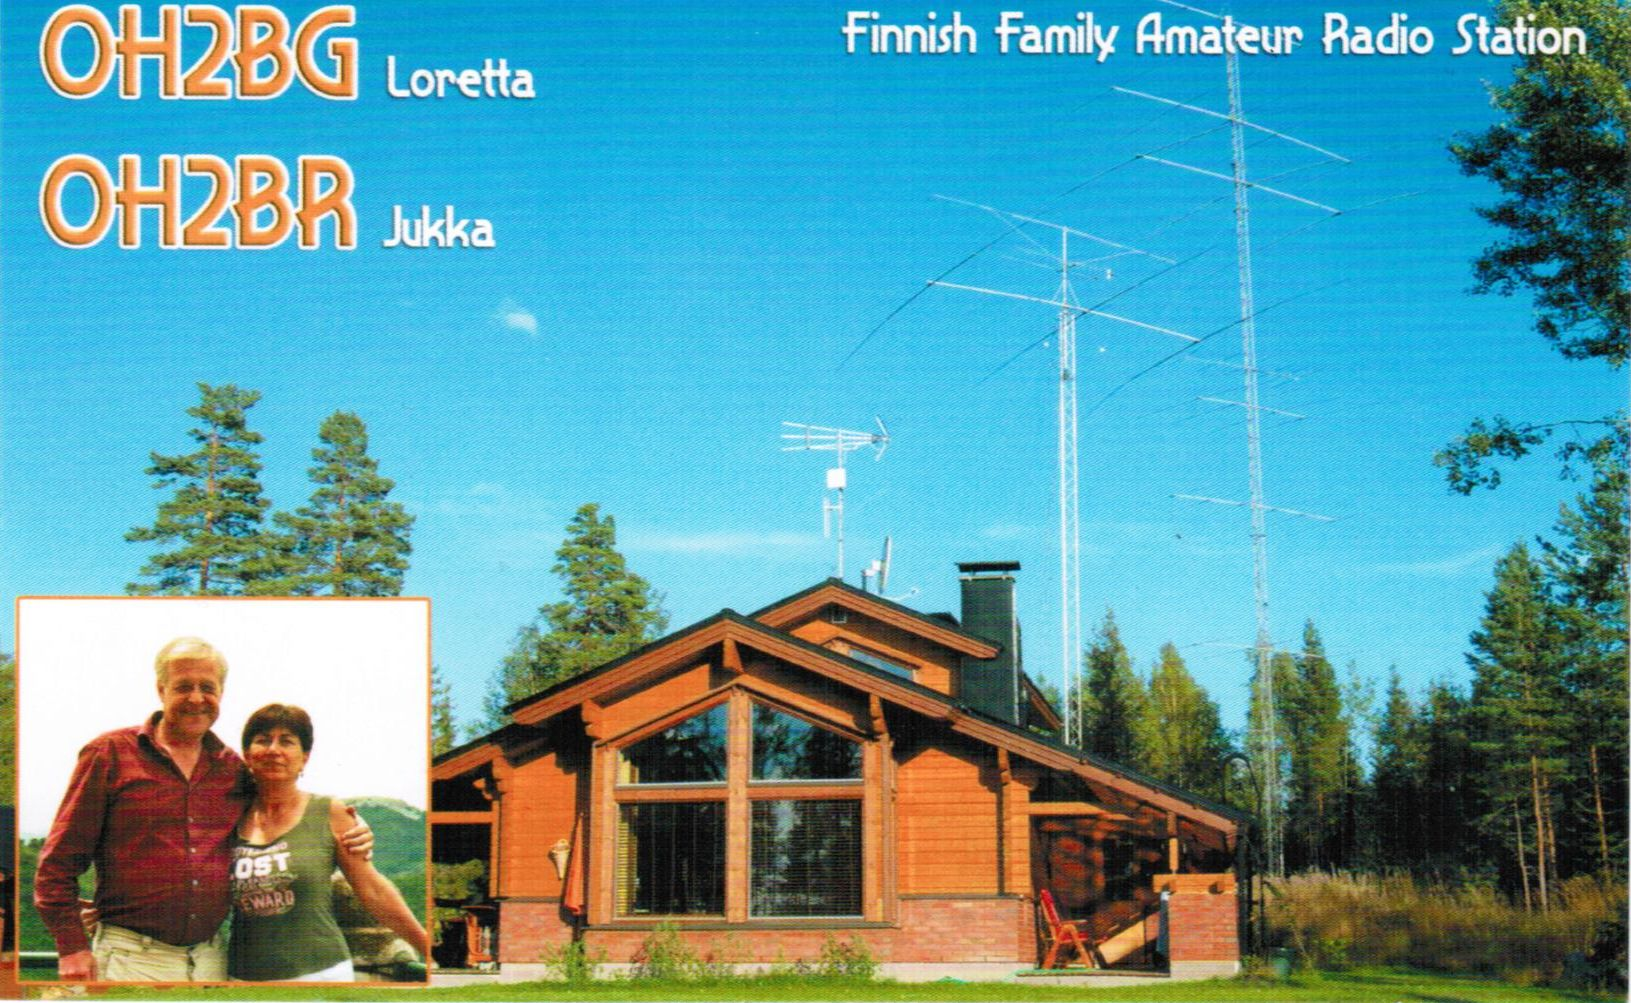 QSL image for OH2BR